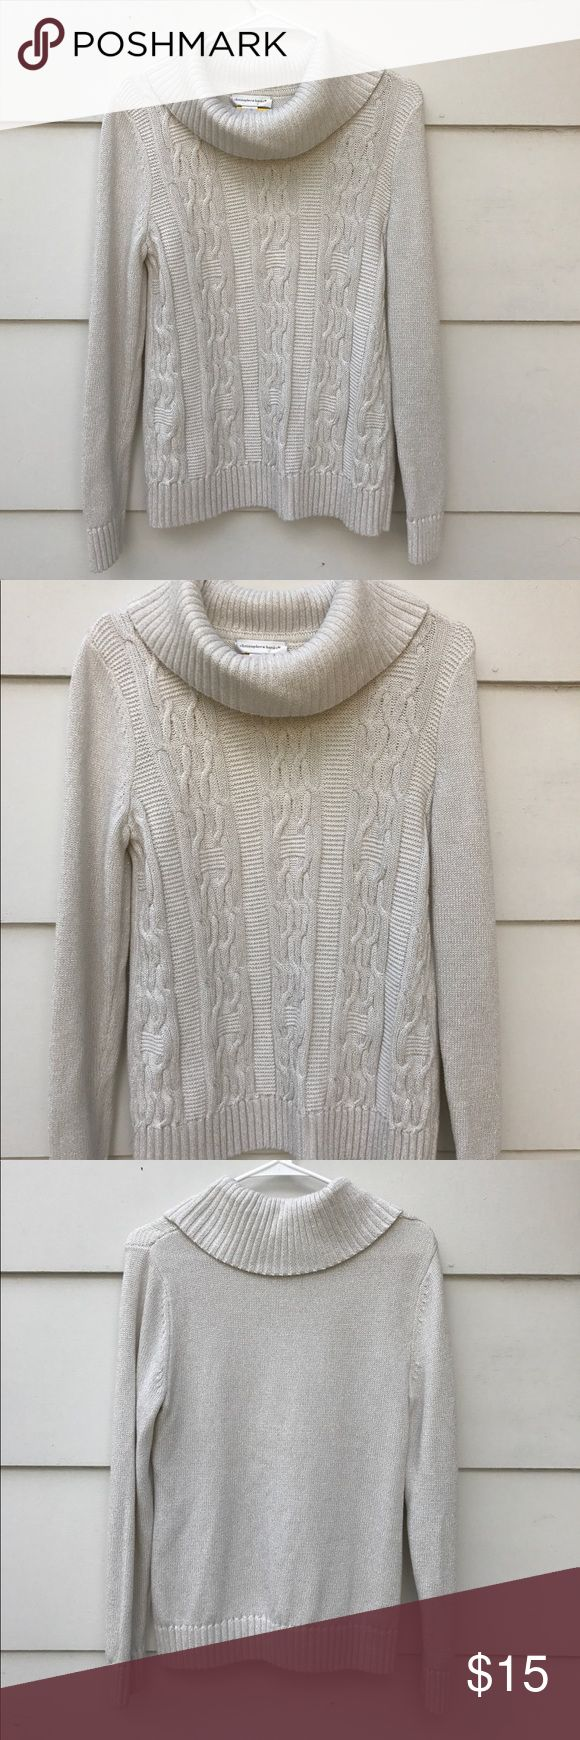 """Christopher & Banks White Cable Knit Sweater Lovely Christopher & Banks women's white cable knit pull over turtleneck sweater silver glitters shimmery. pre-owned, in very good condition. Size Small. Materials. 94% cotton 6% other fibers. Measurements. sleeves 24"""" shoulder 16"""" armpit 34"""" overall length 24"""" Christopher & Banks Sweaters Cowl & Turtlenecks"""